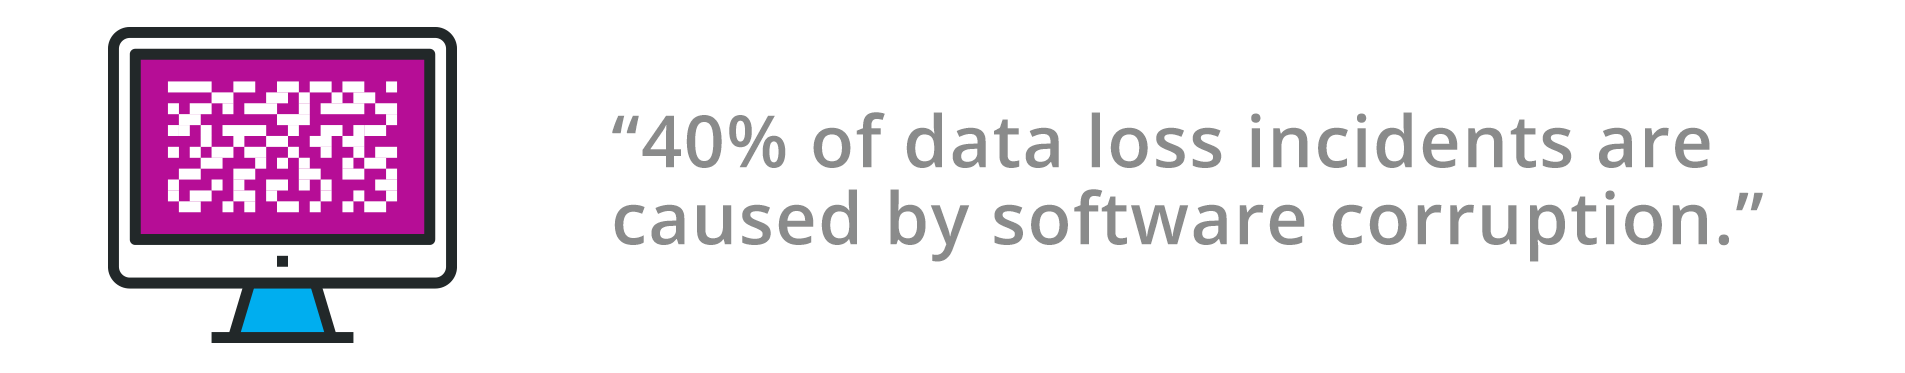 data loss stat